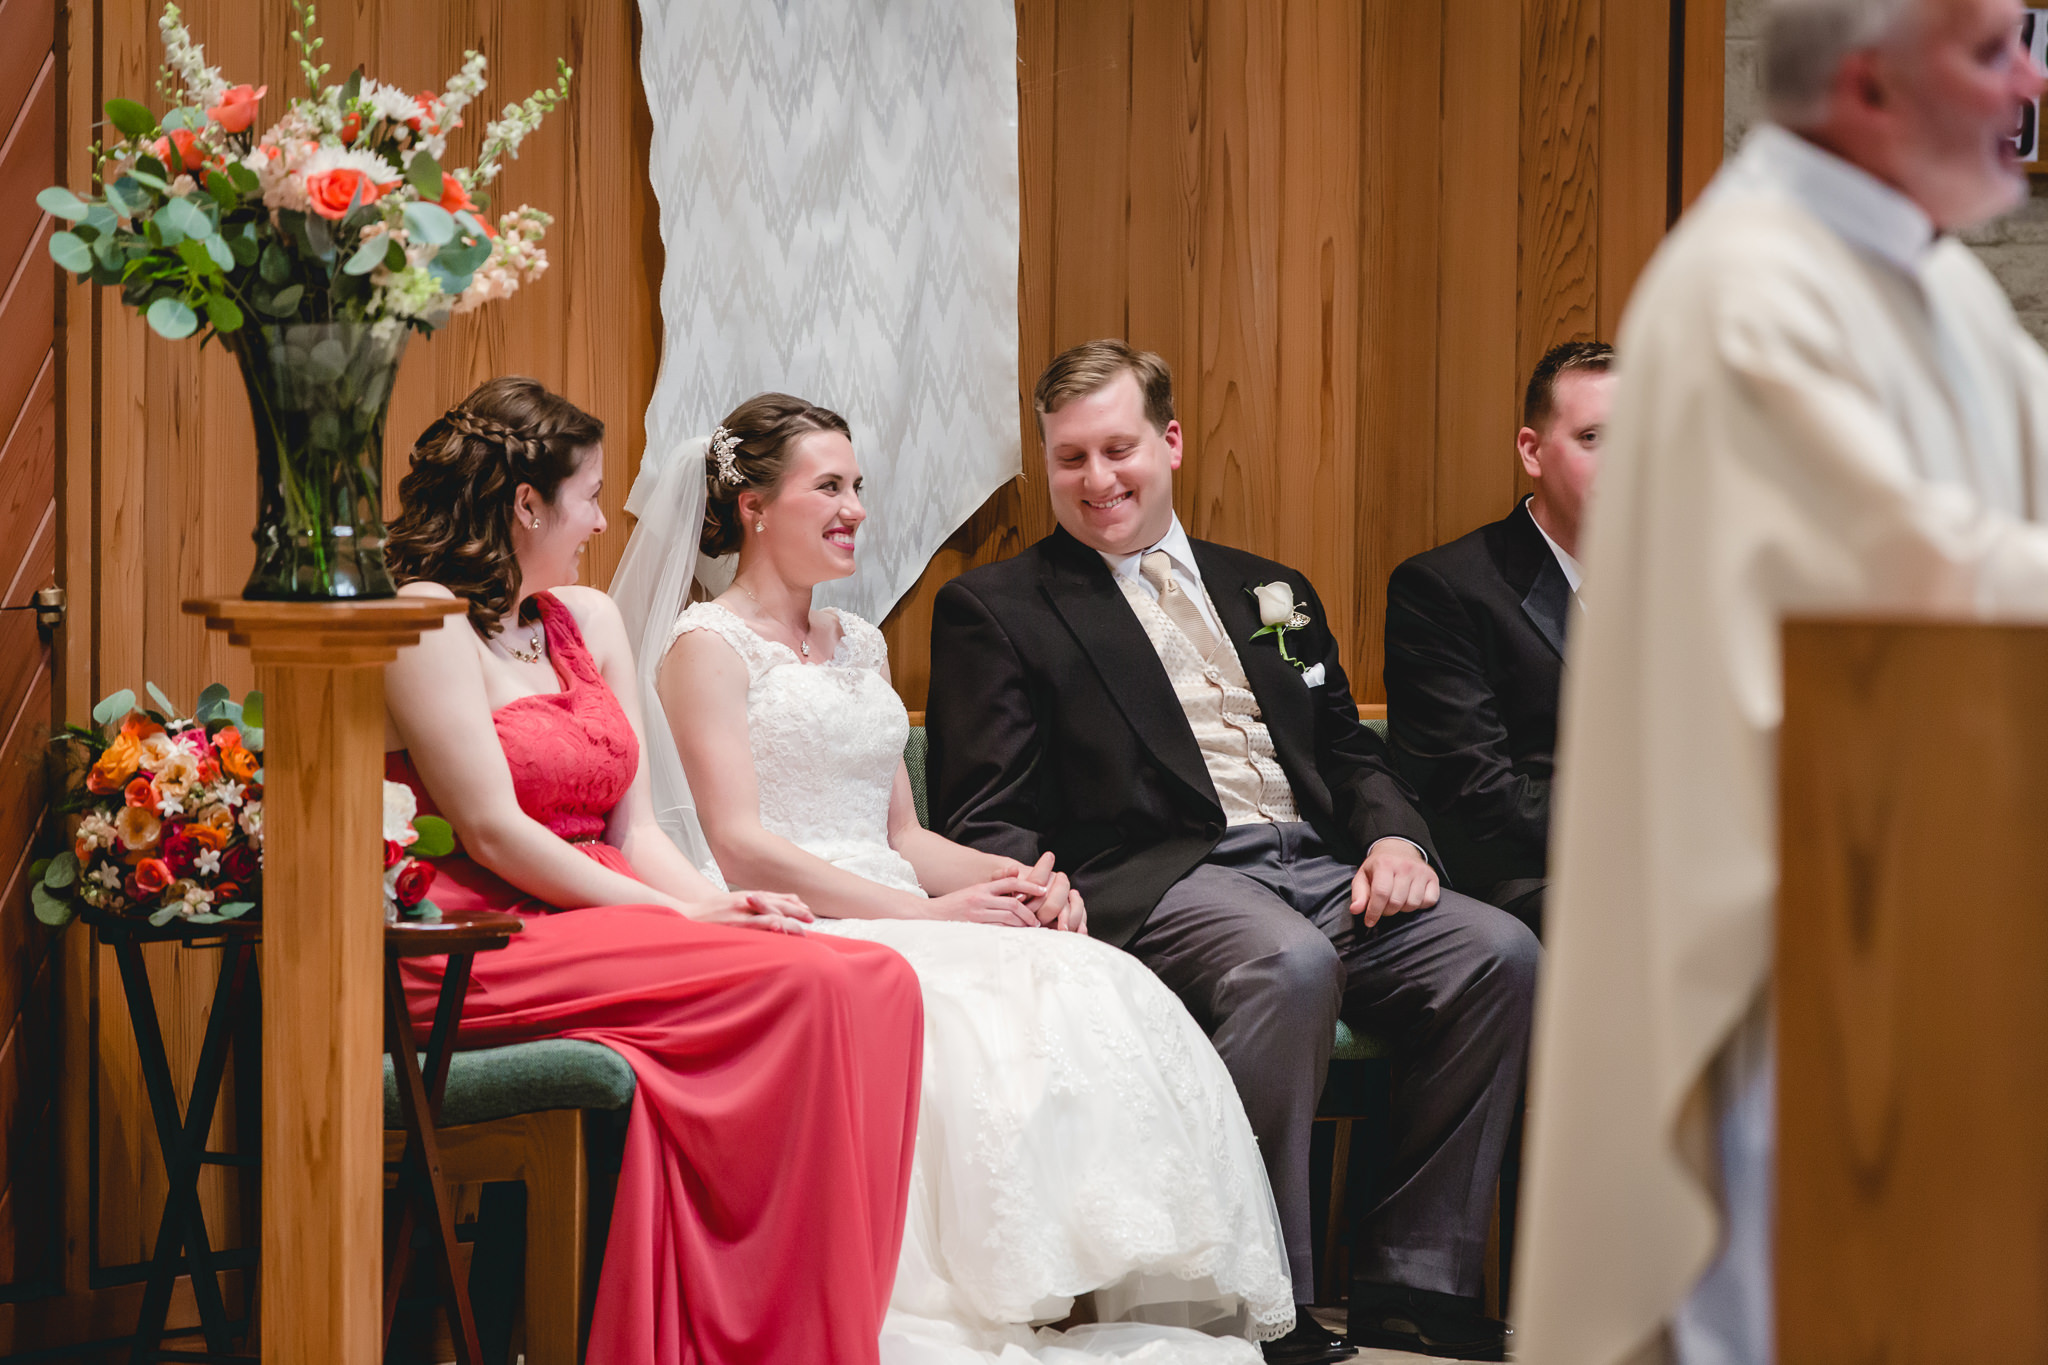 Bride & groom laughing during wedding ceremony at St. John Neumann Church in Pittsburgh PA